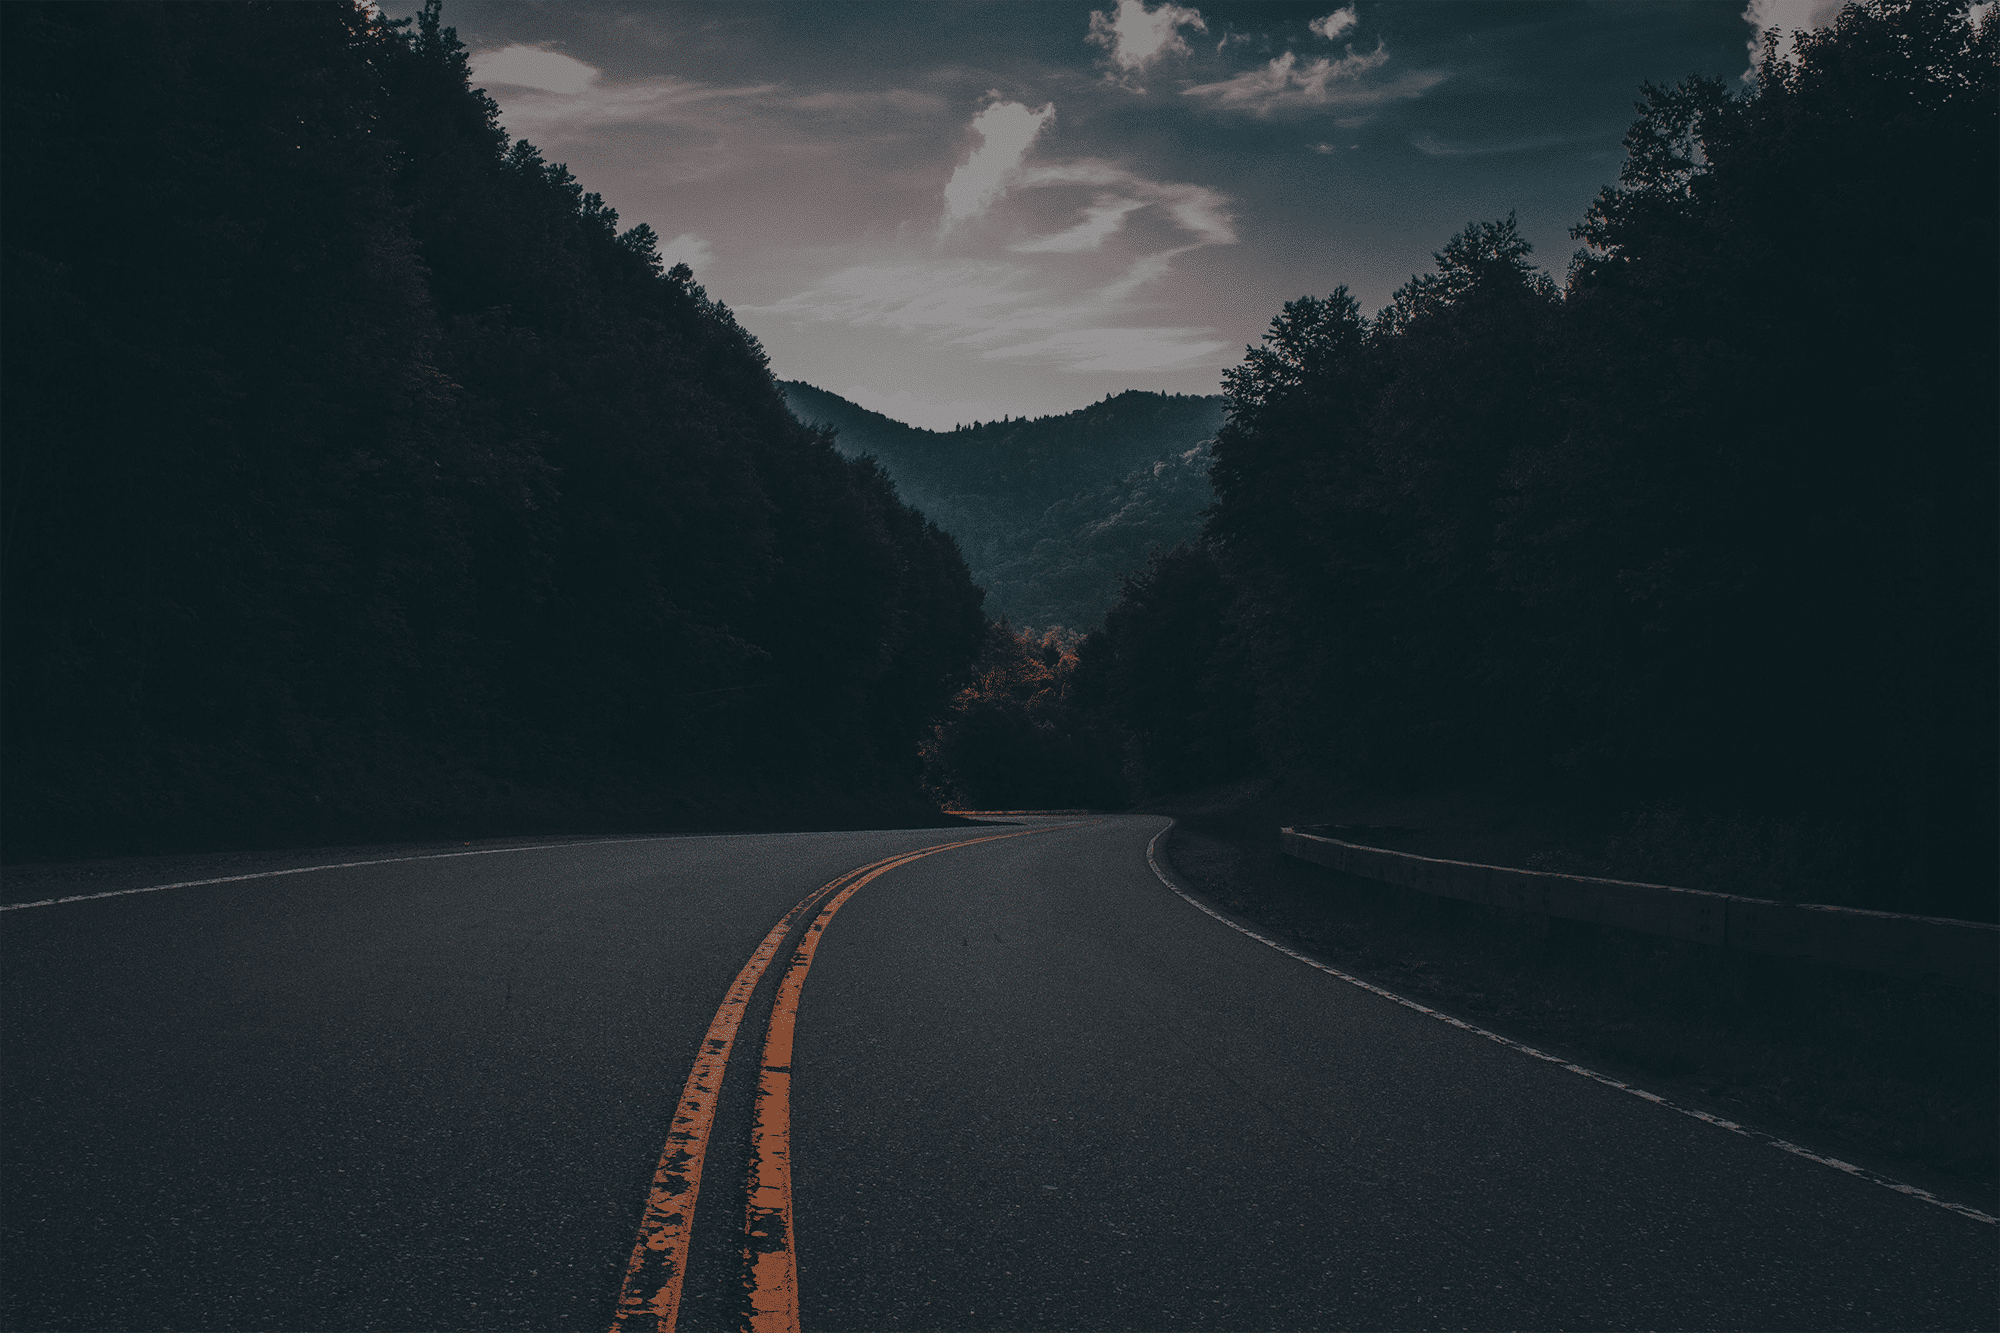 A winding highway towards mountains